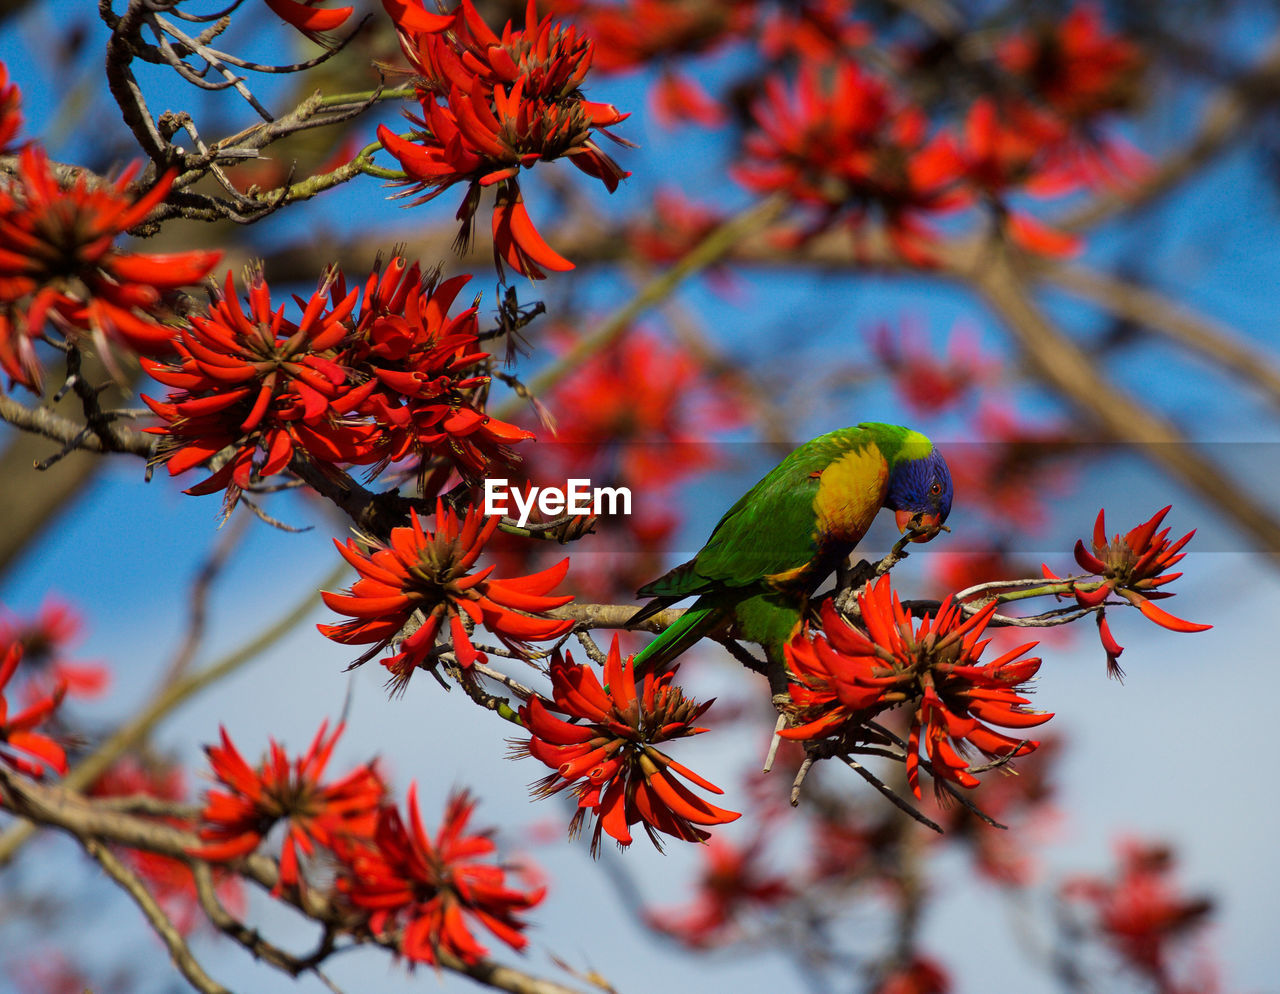 plant, animals in the wild, animal wildlife, animal themes, bird, animal, tree, focus on foreground, beauty in nature, no people, growth, perching, branch, one animal, flower, vertebrate, flowering plant, nature, close-up, day